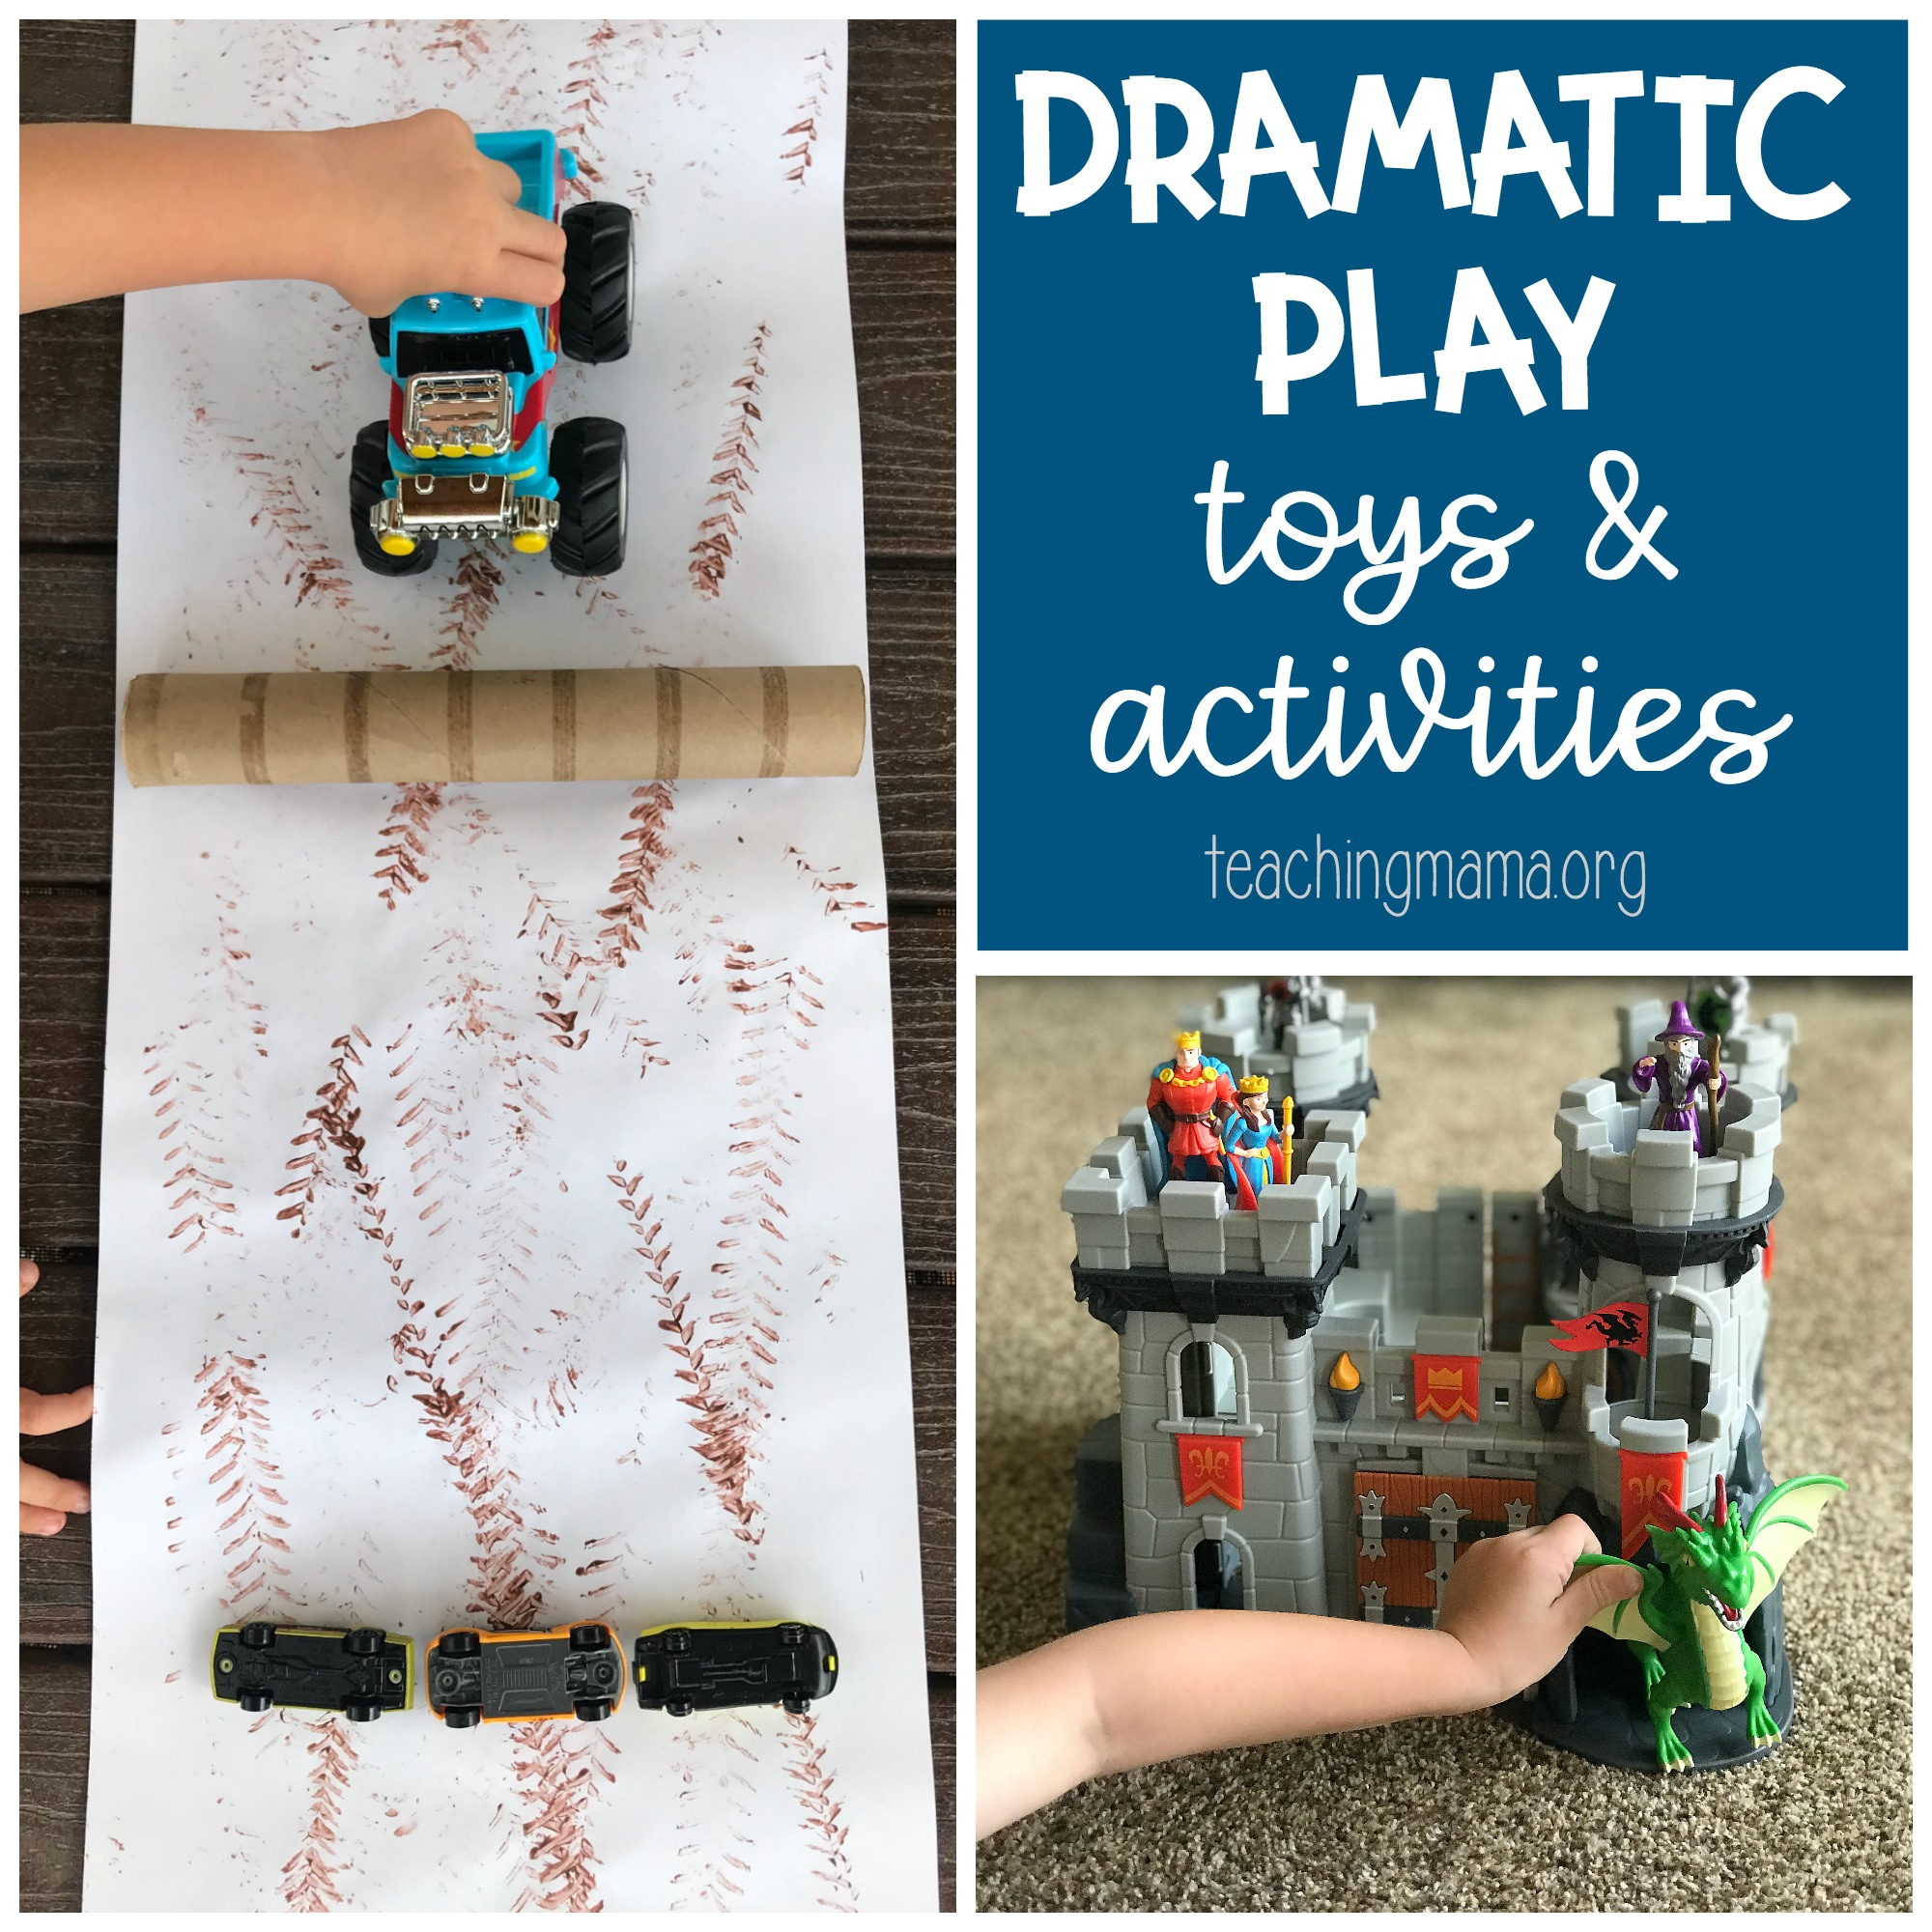 Toys for Dramatic Play